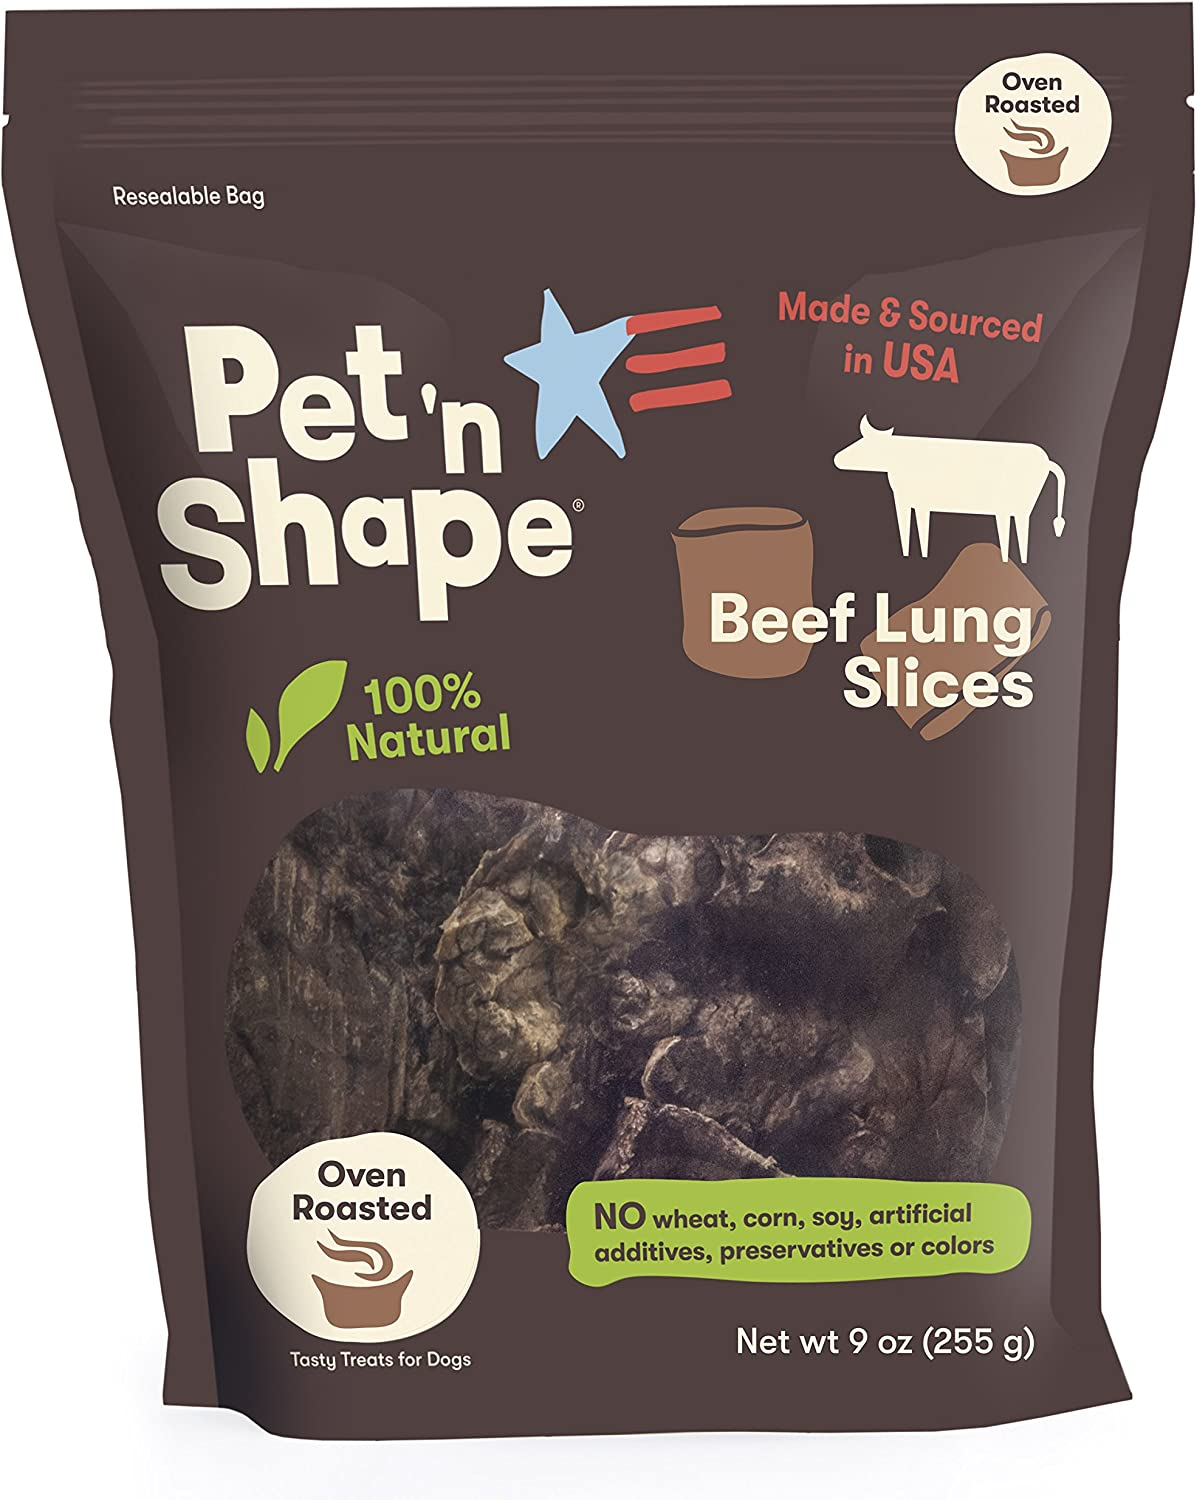 Pet n Shape Beef Lung Dog Treats Made and Sourced in the USA – All Natural Healthy Treat